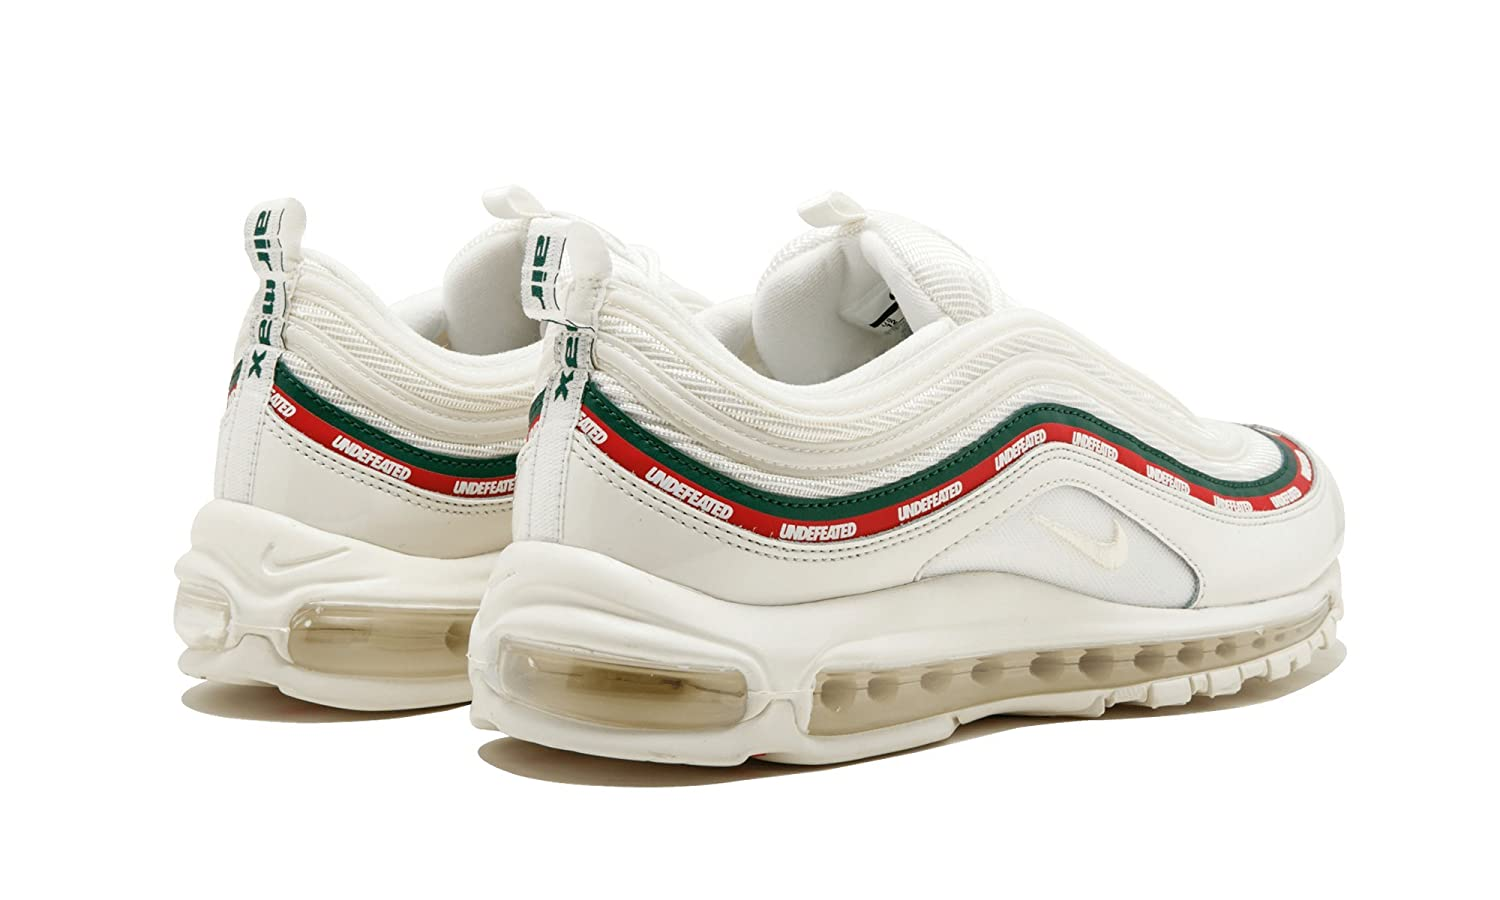 NIKE Air Max 97 OGUndftd Undefeated AJ1986 100: